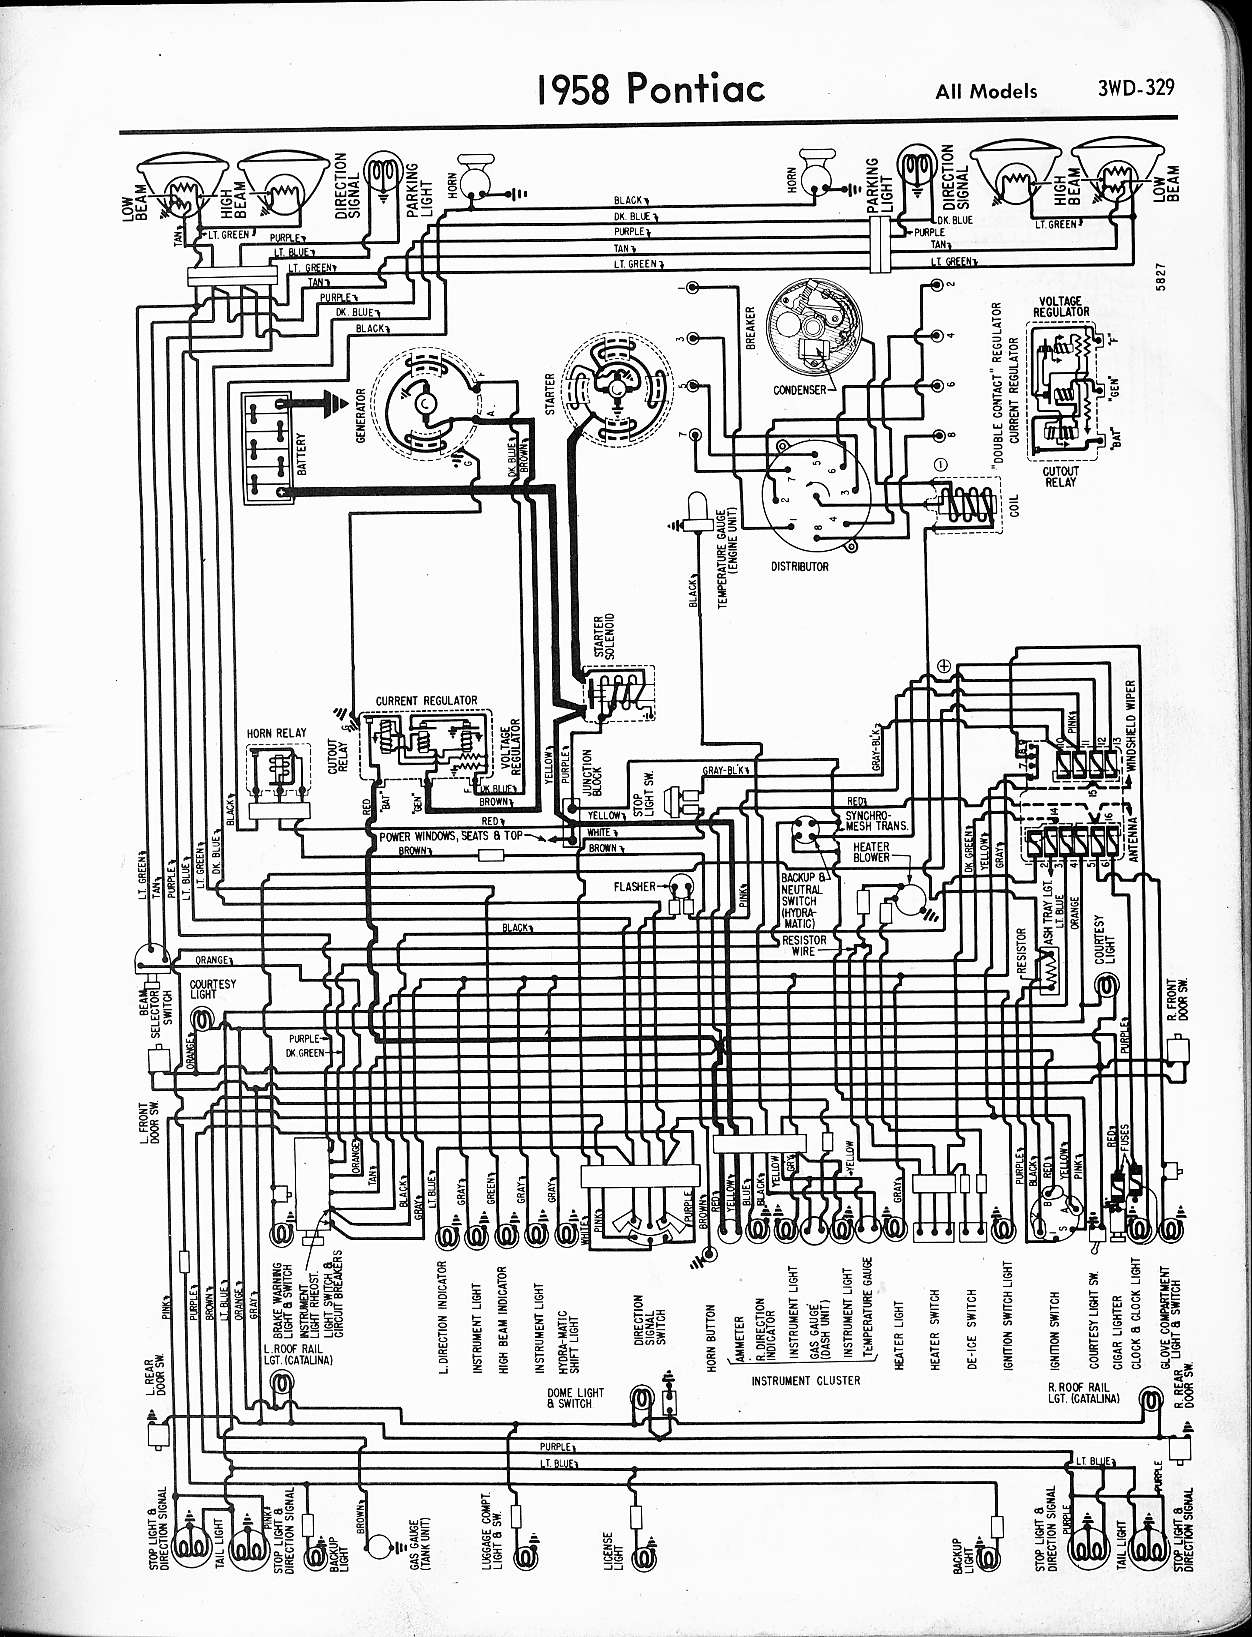 wallace racing wiring diagrams rh wallaceracing com 1970 Firebird Wiring Diagram Pontiac Grand Prix Wiring Diagrams